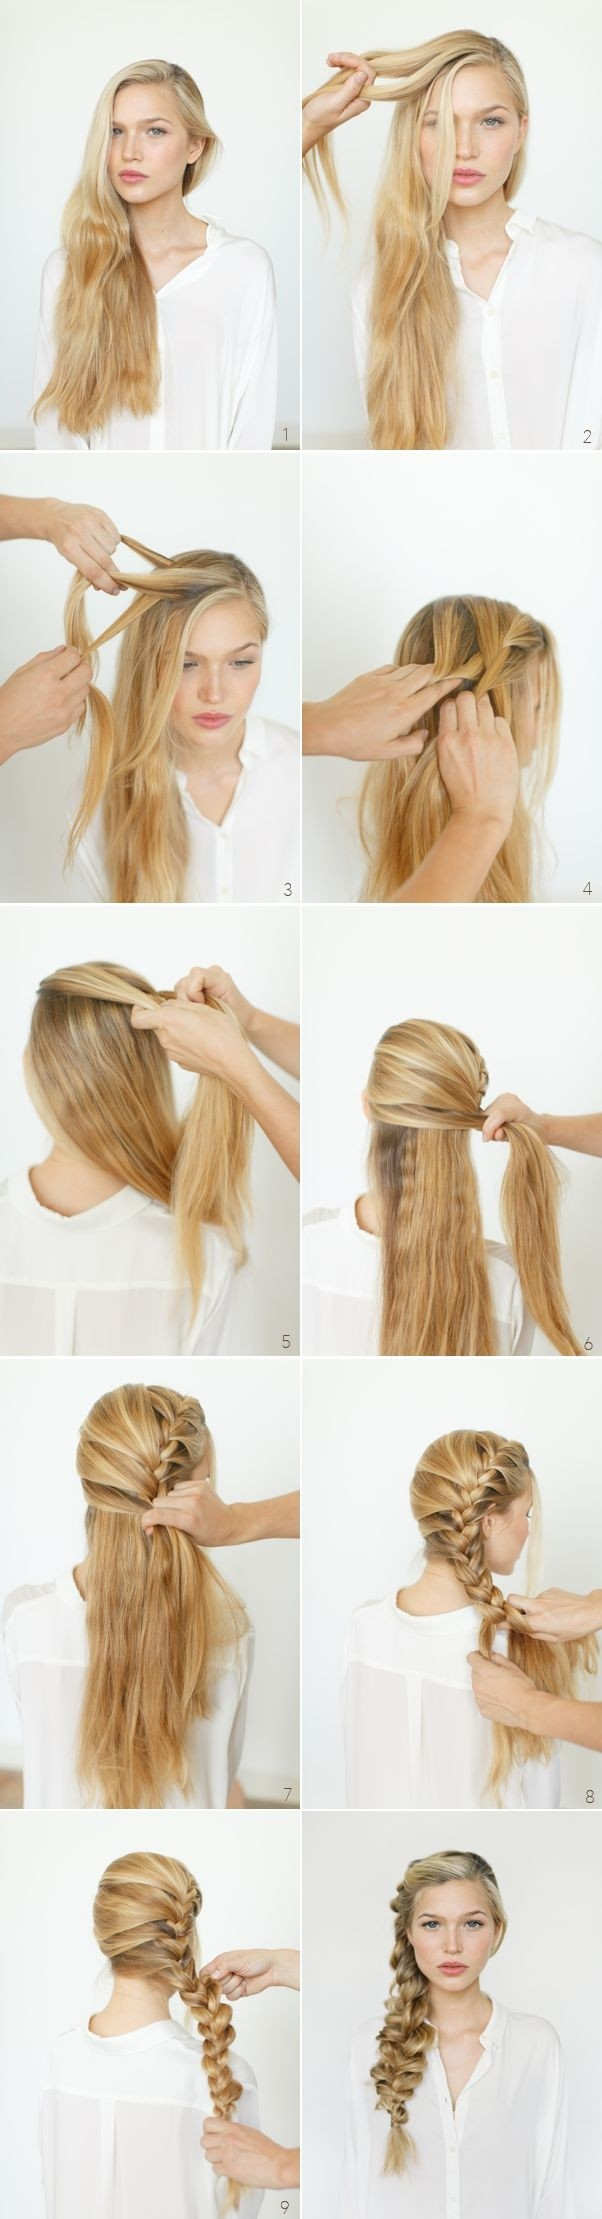 Side Braided Hairstyles: Long Hair Ideas